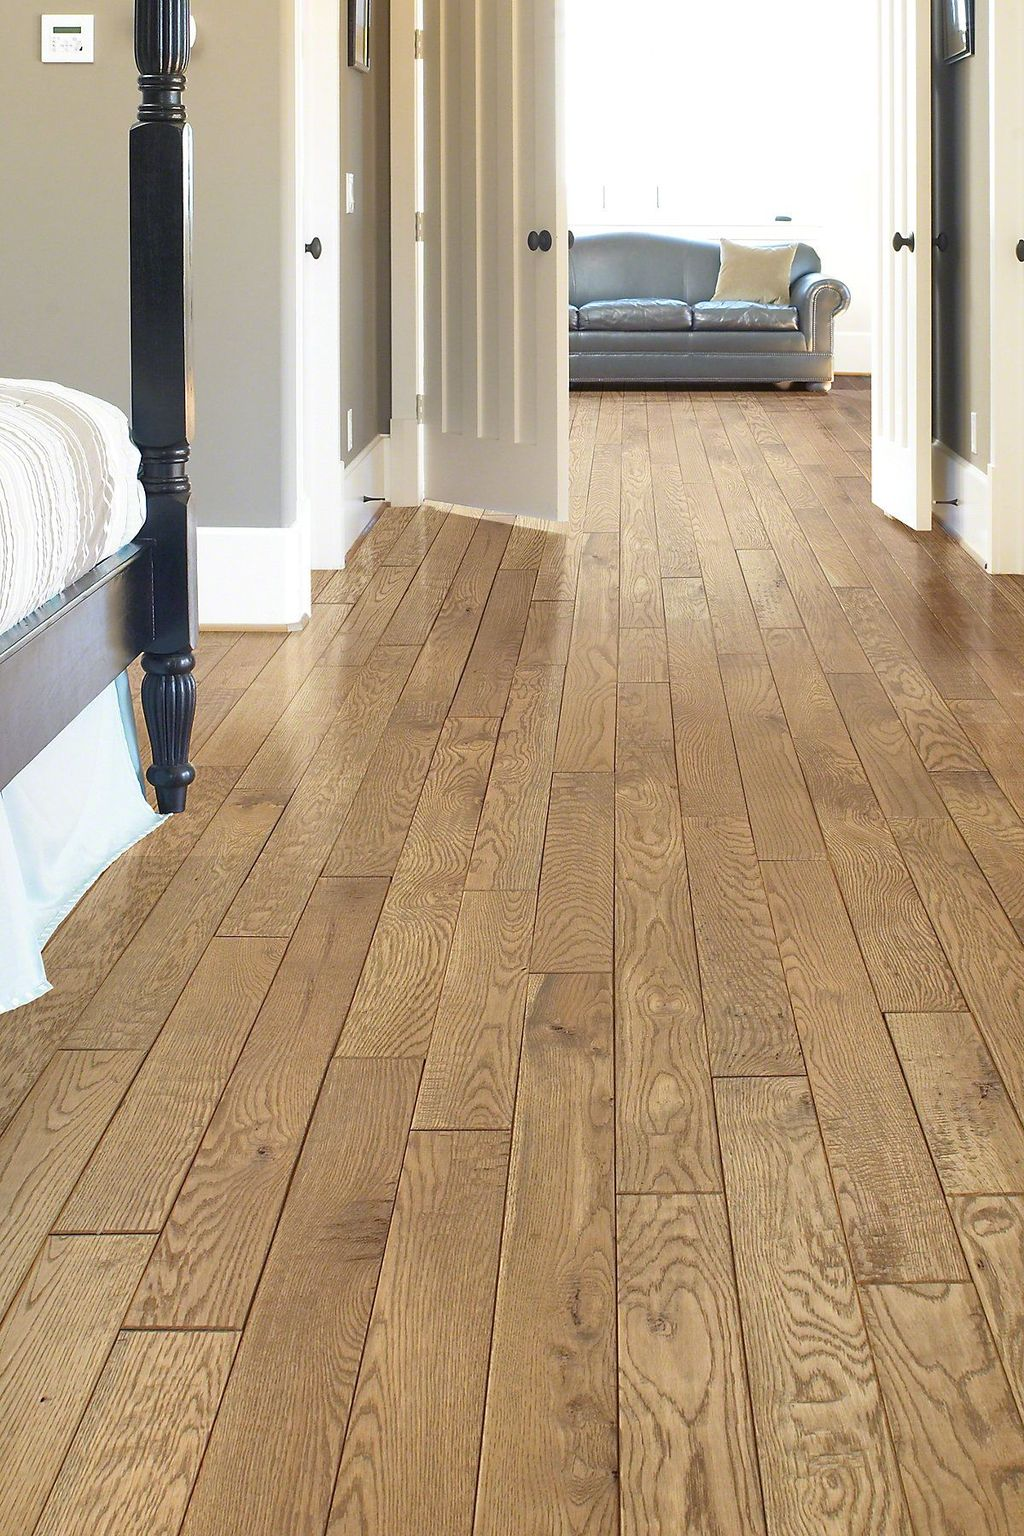 Awesome Wooden Tiles Flooring Ideas 02